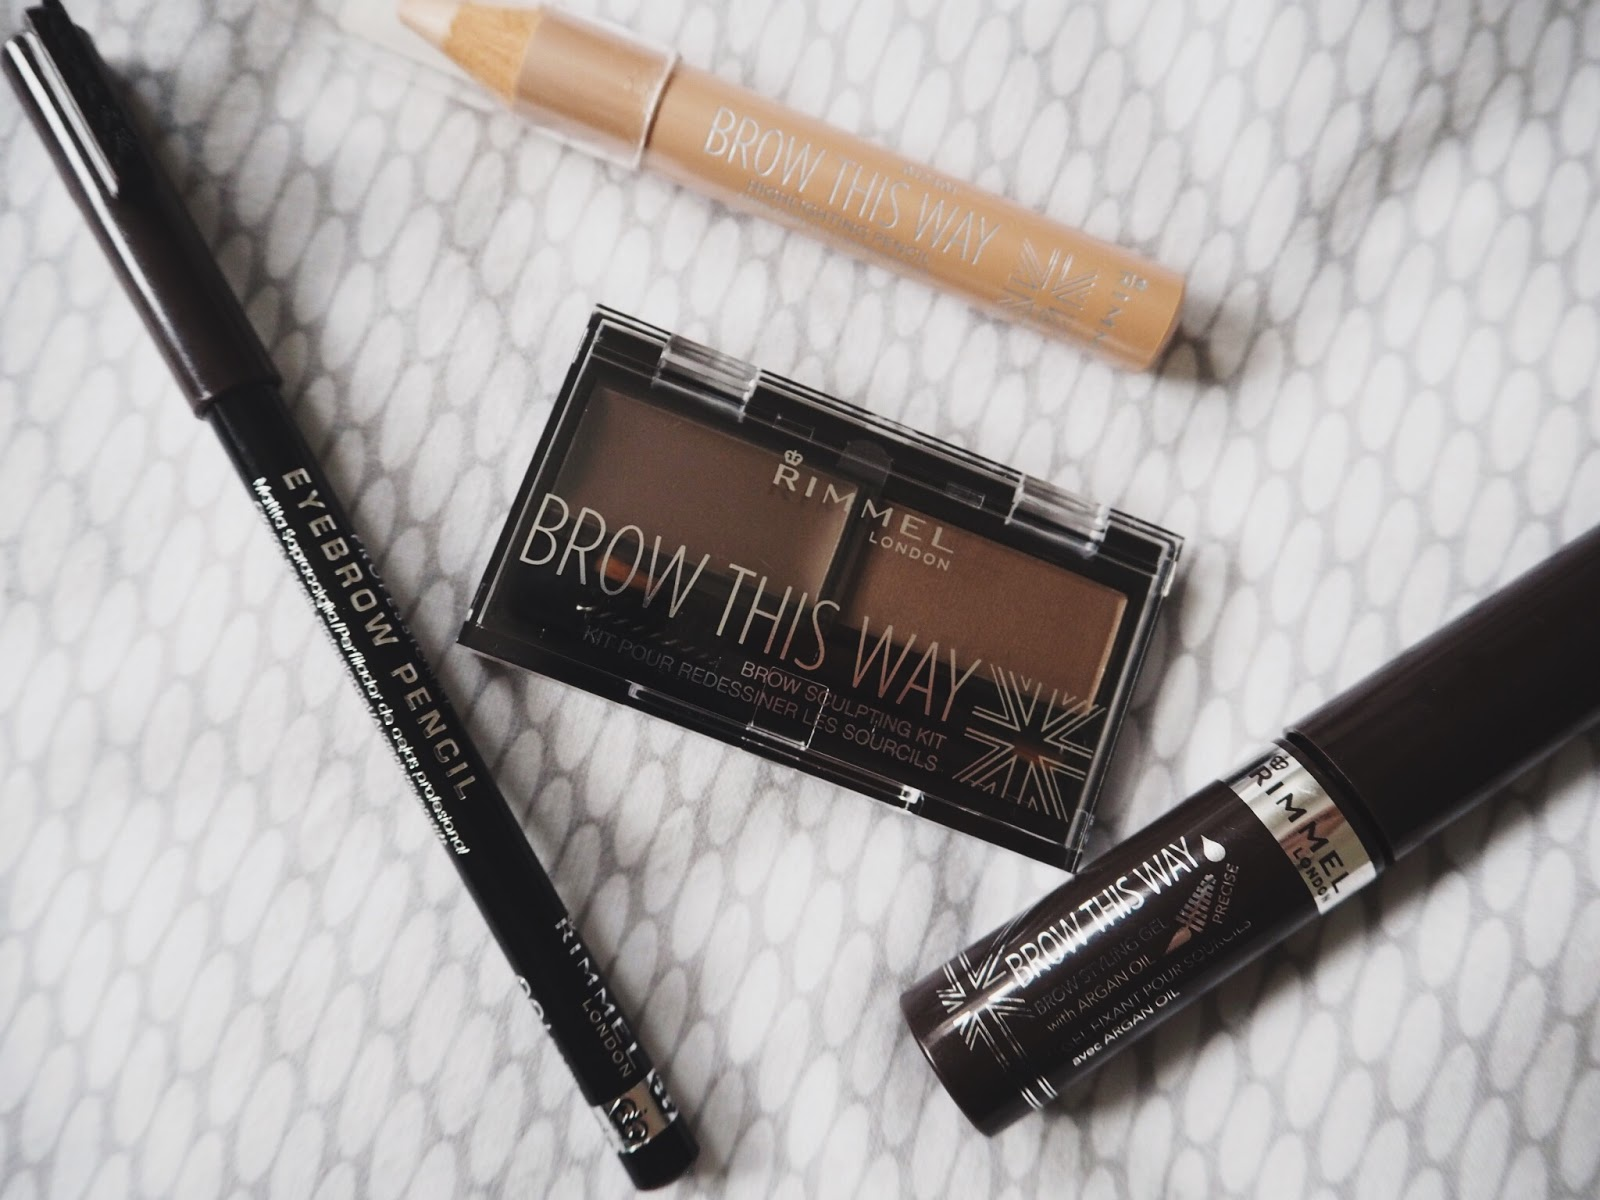 #browthisway Brows by Rimmel #ad